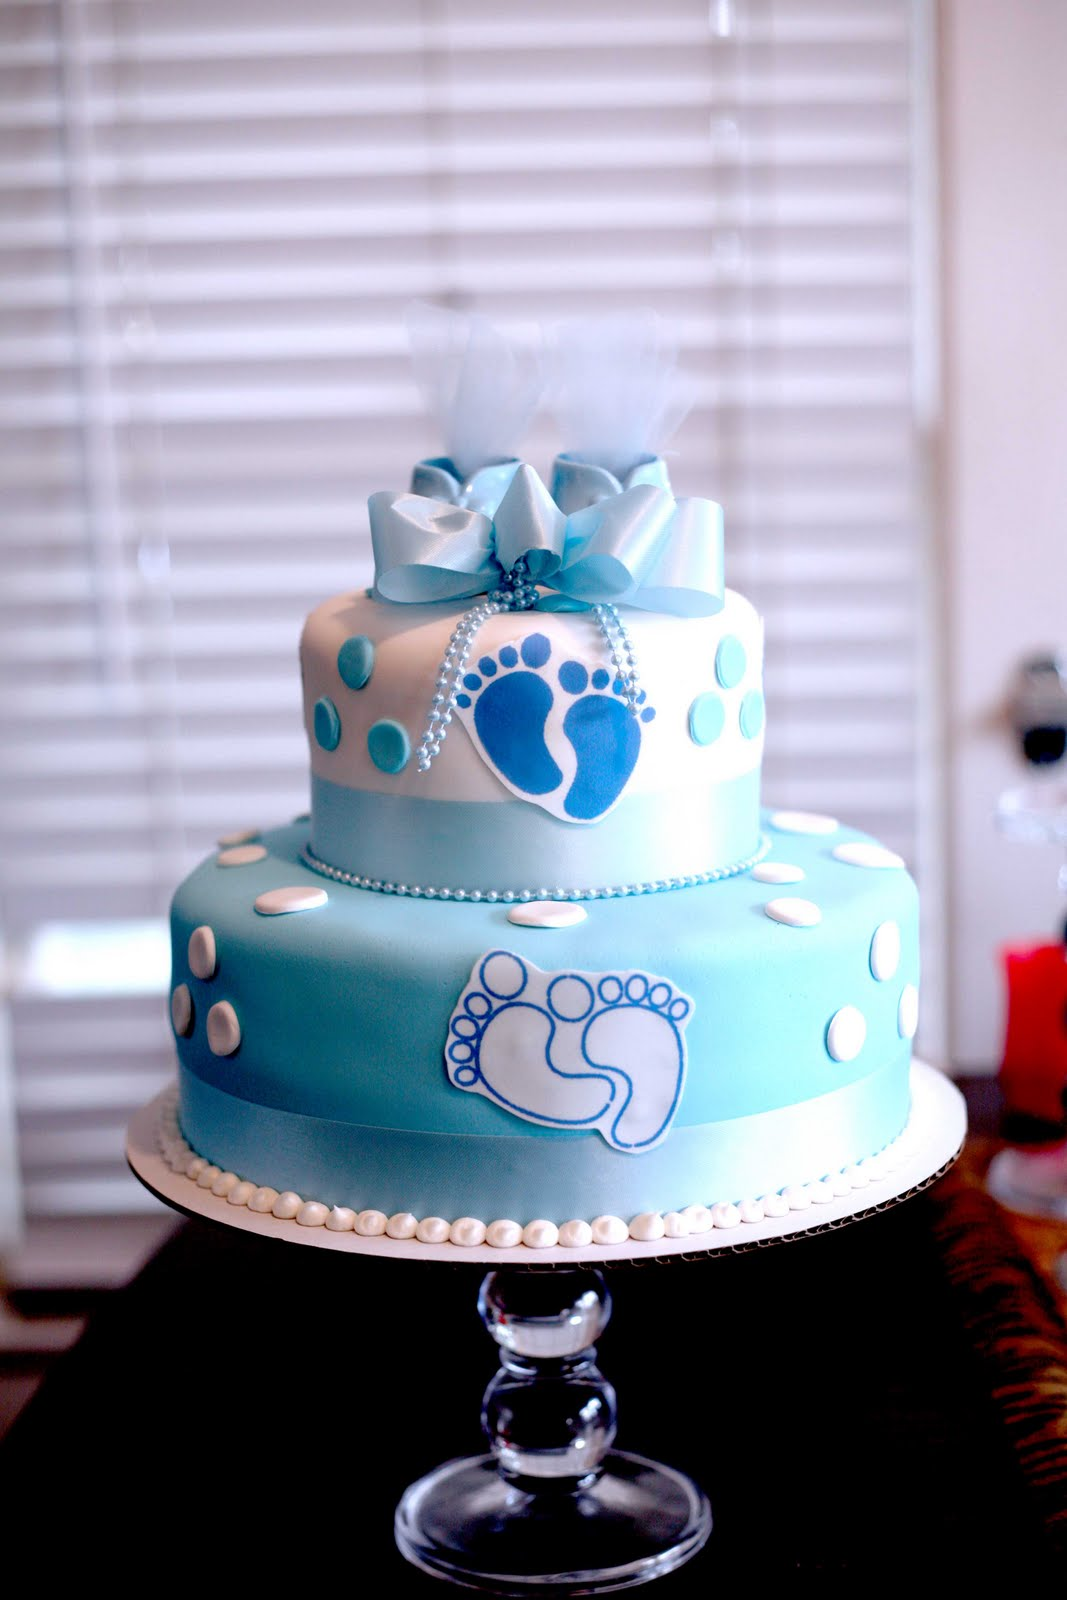 hector 39 s custom cakes boy baby shower cake 2 tiered stacked layered